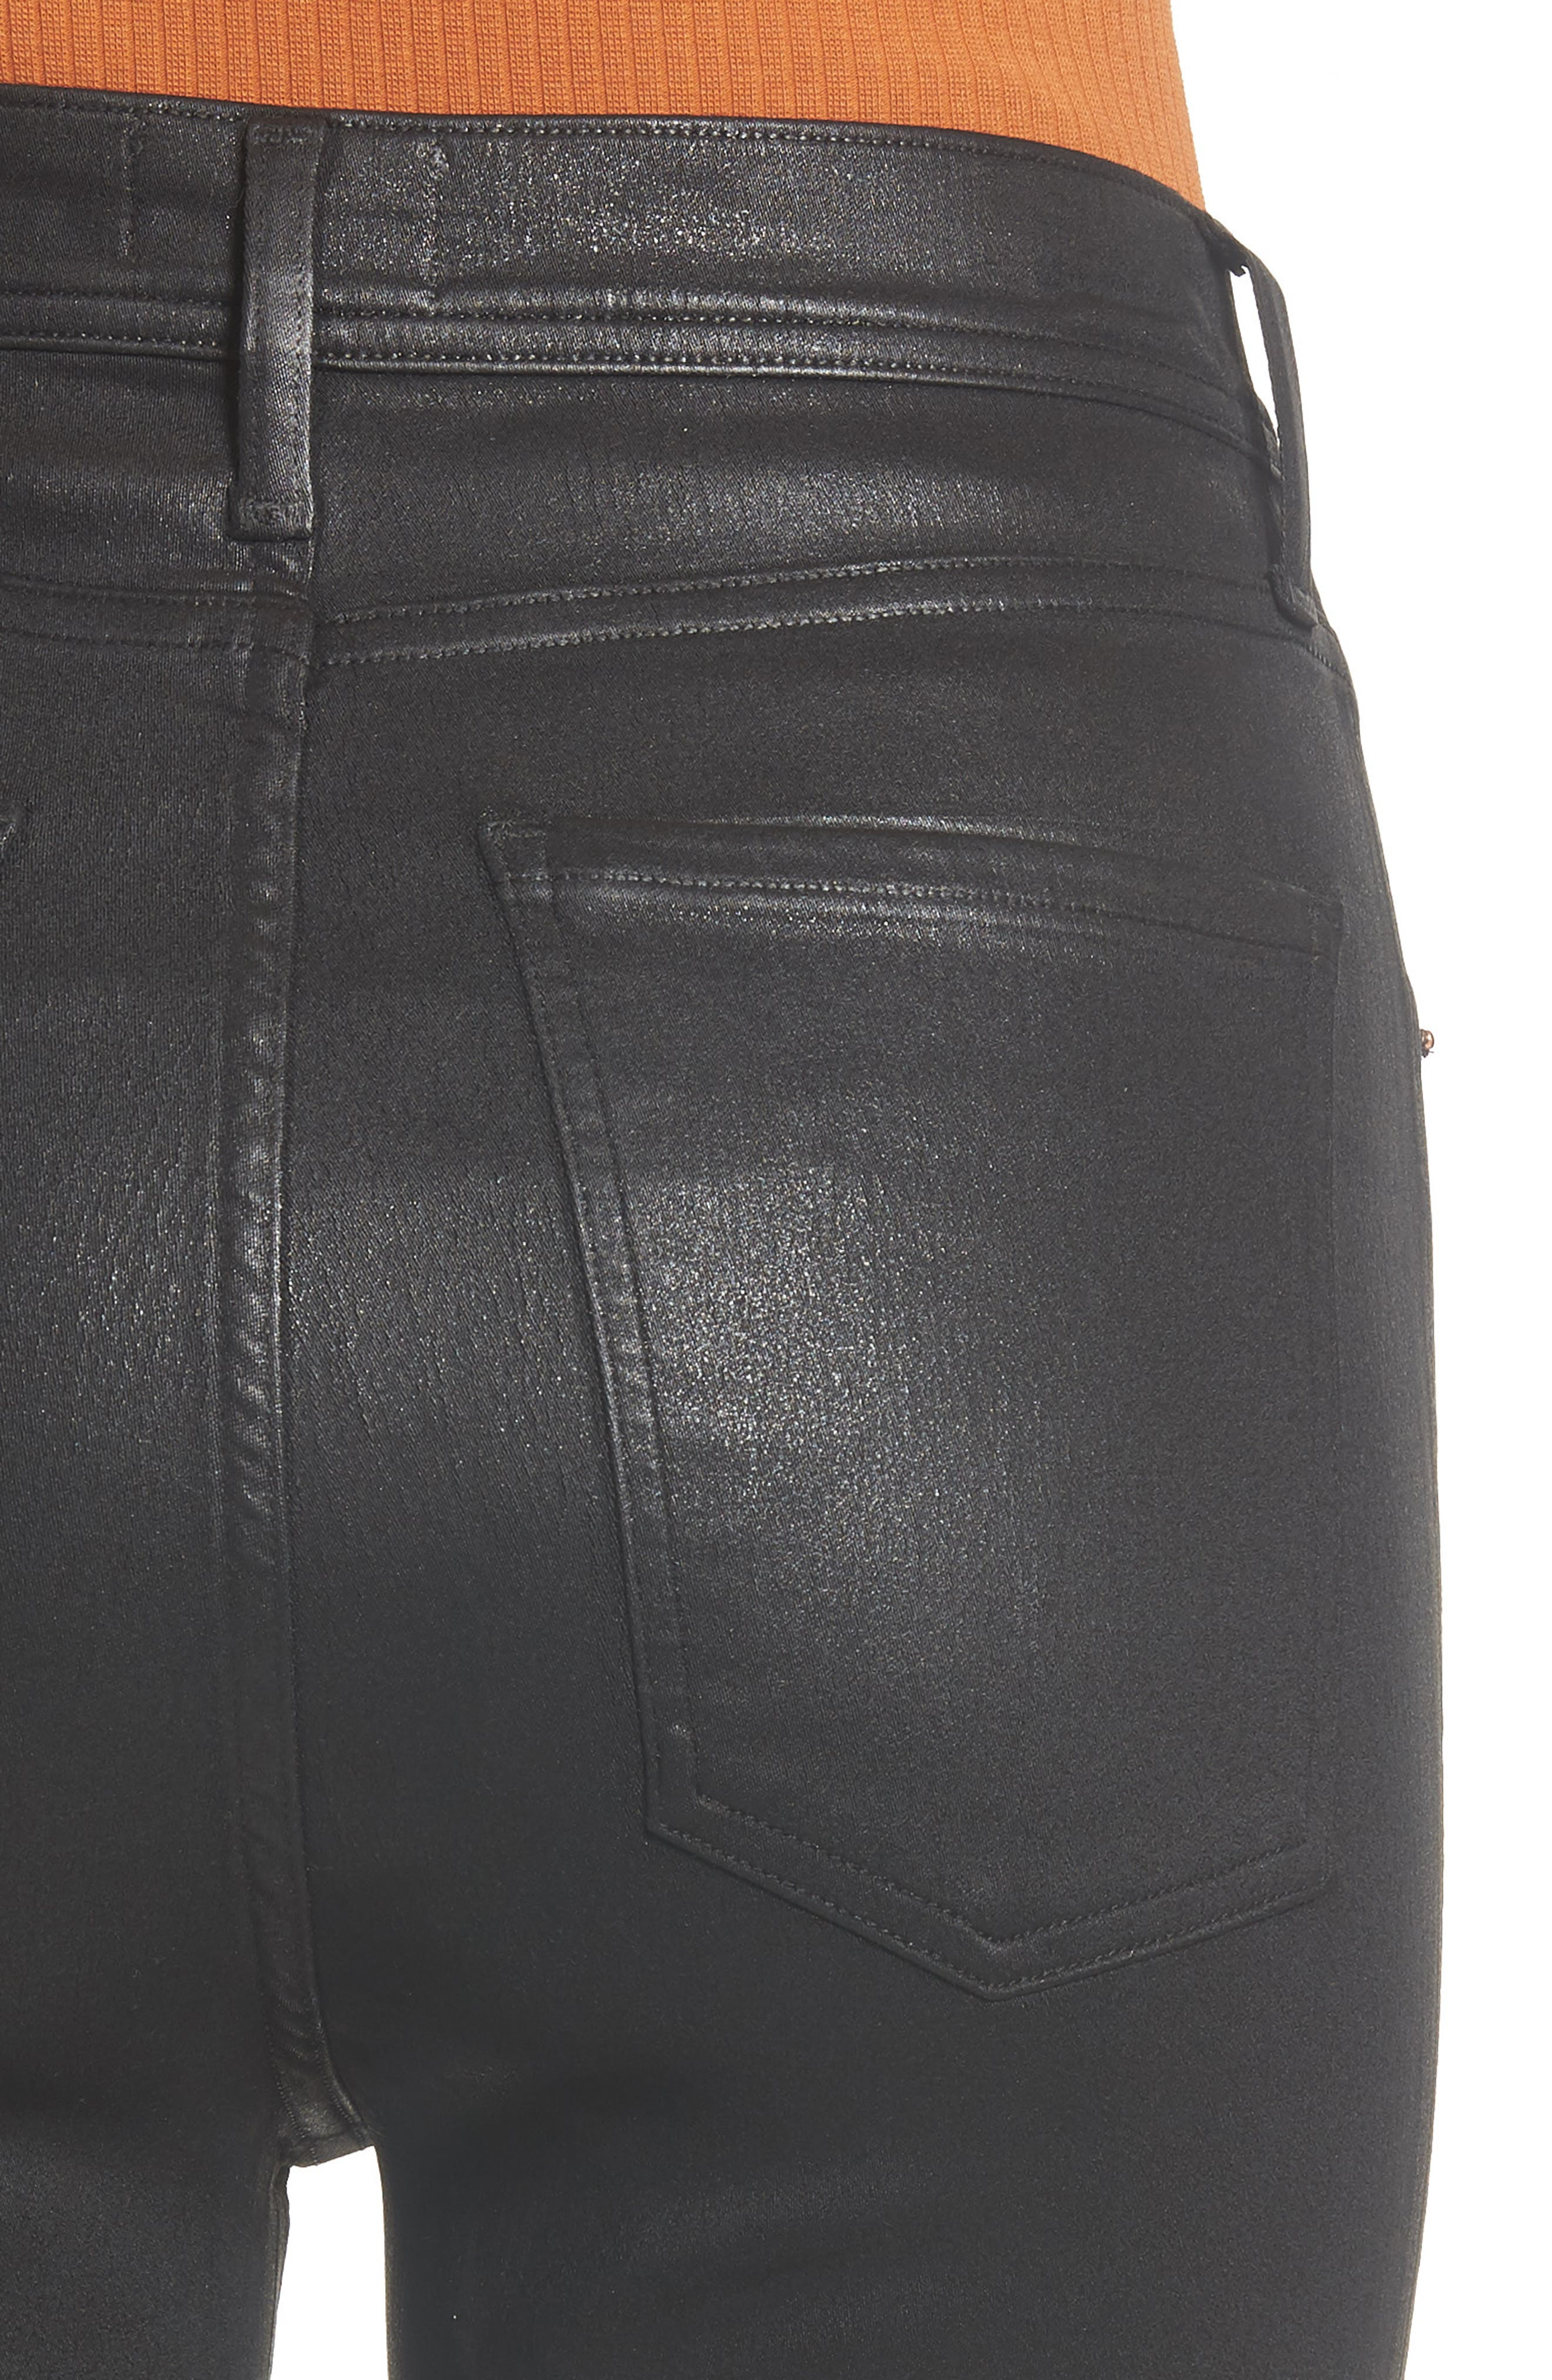 Roxanne Faux Leather High Waist Ankle Skinny Pants,                             Alternate thumbnail 4, color,                             007